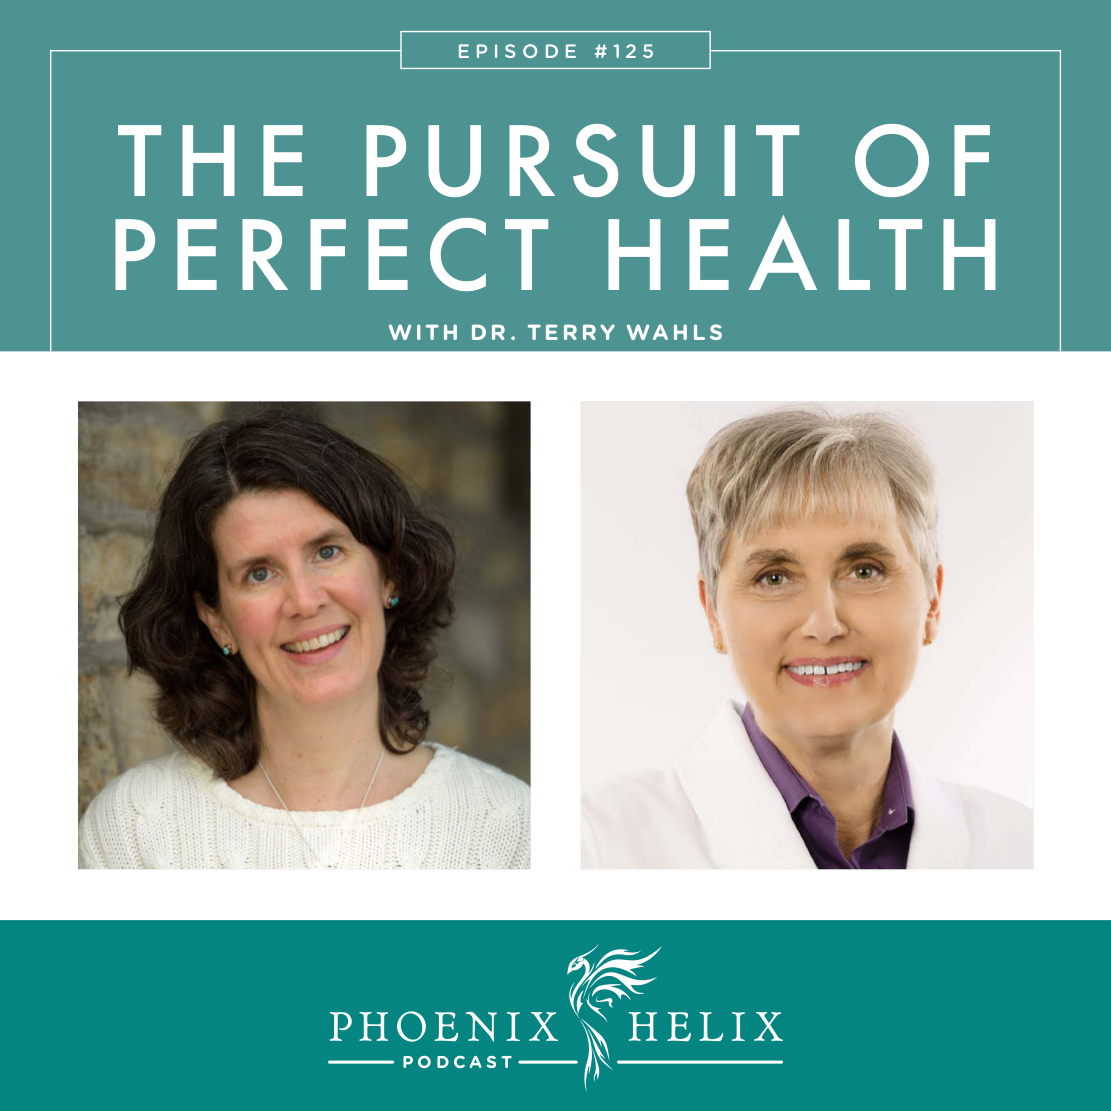 The Pursuit of Perfect Health with Dr. Terry Wahls | Phoenix Helix Podcast